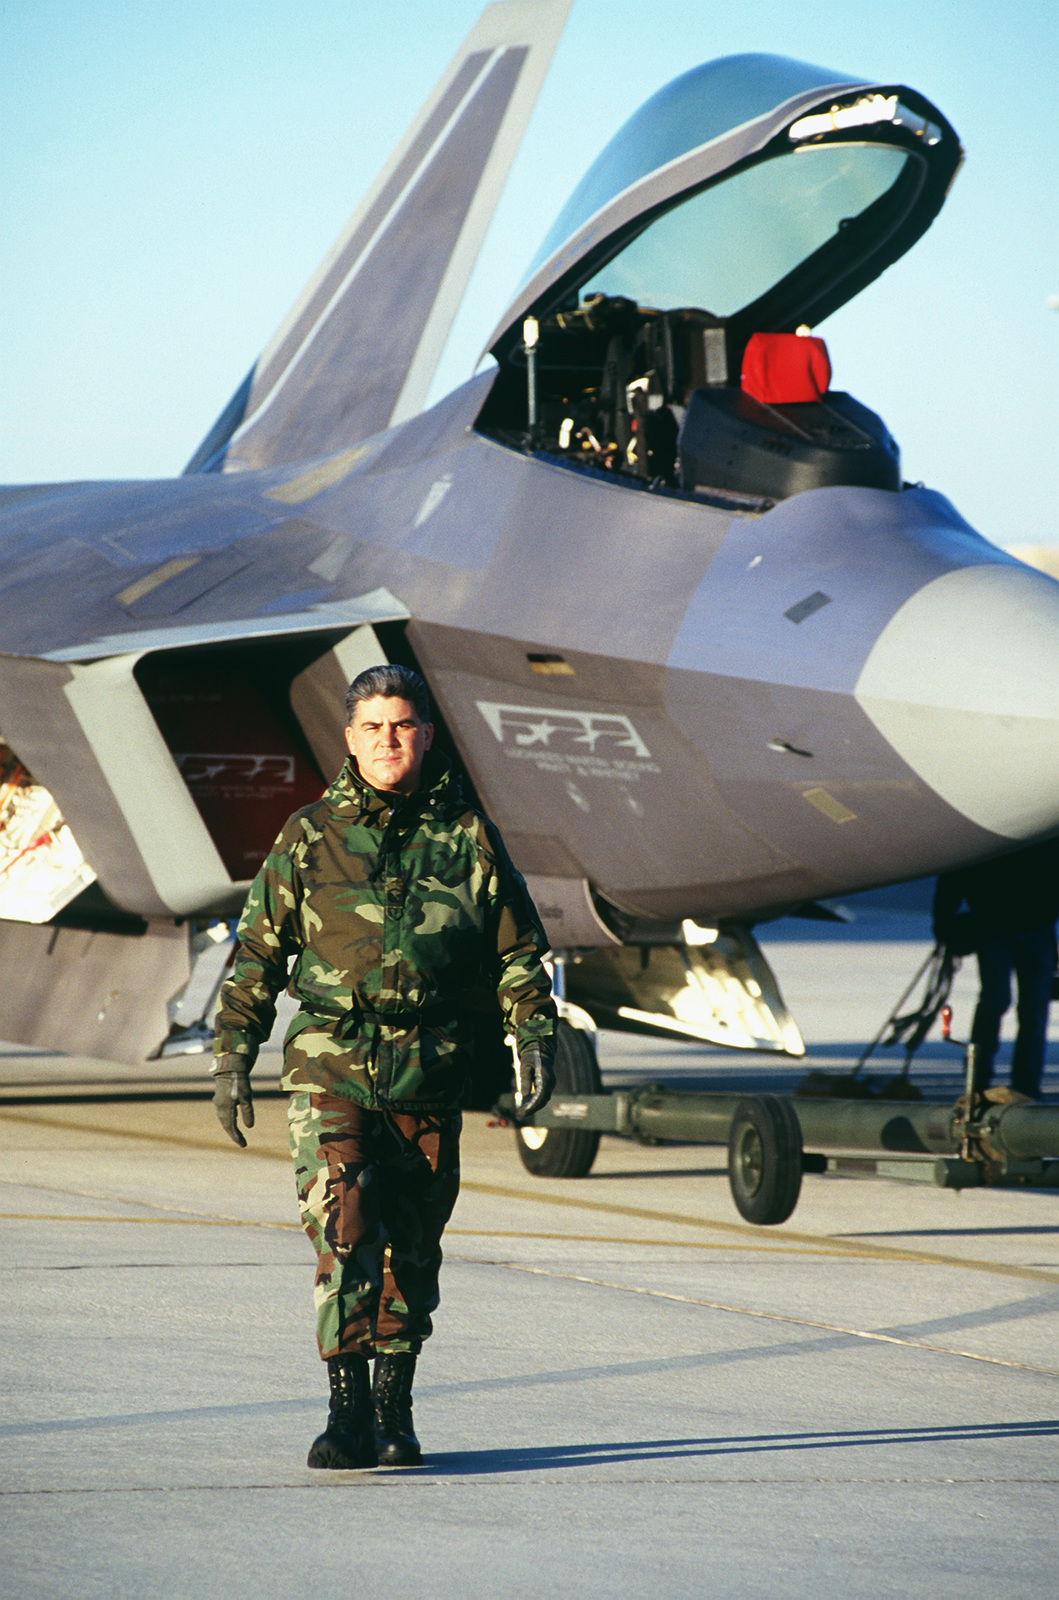 US Air Force MASTER Sergeant Joseph Chew, F-22 dedicated Crew CHIEF, walks ahead of his F-22 Raptor as it's towed for an early morning test flight on March 1ST, 1999, at the F-22 Combined Test Force Facility, Edwards Air Force Base, California